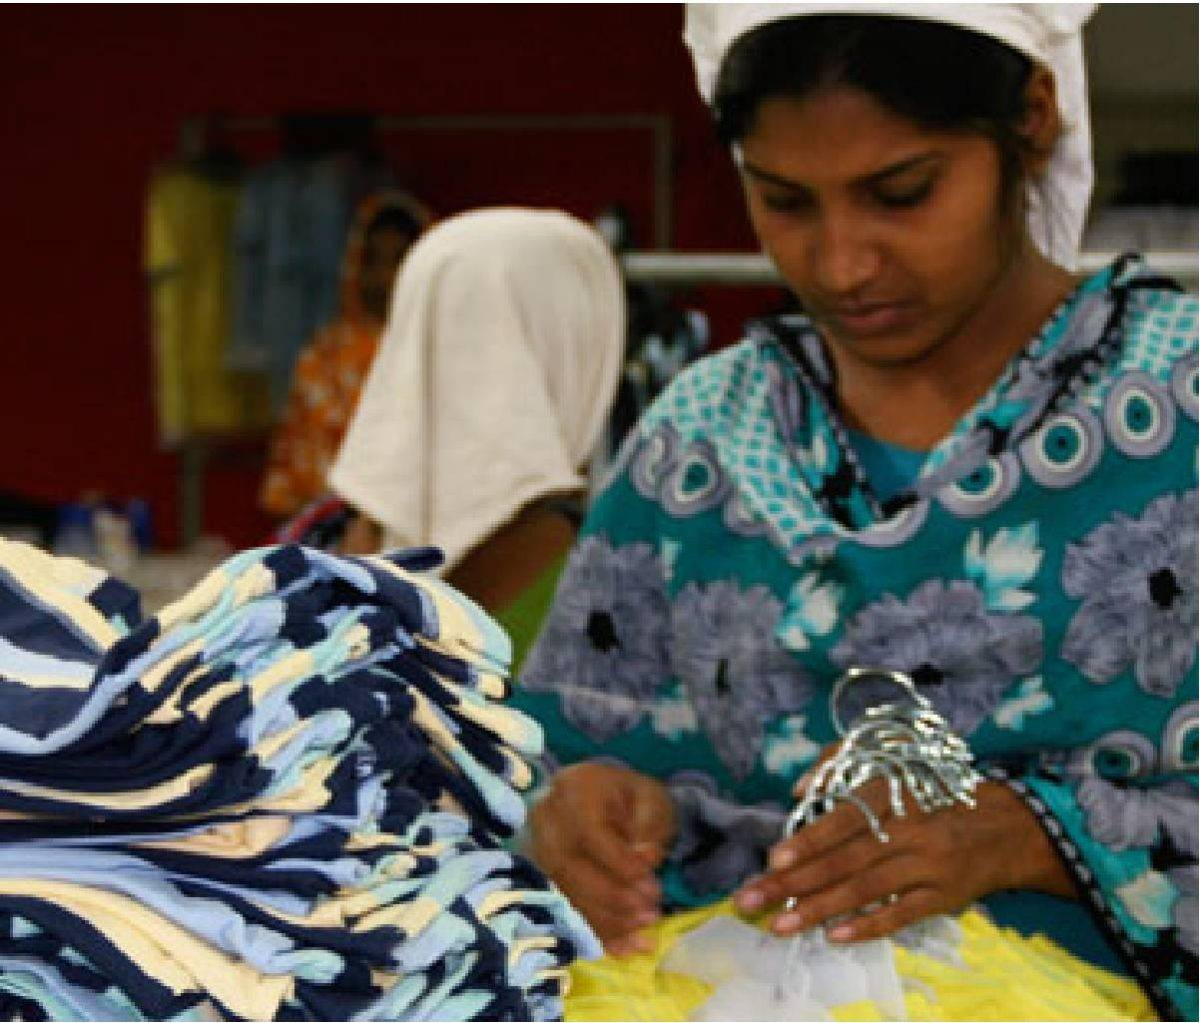 Female Epyllion employee looking at blue and yellow garments in garment factory